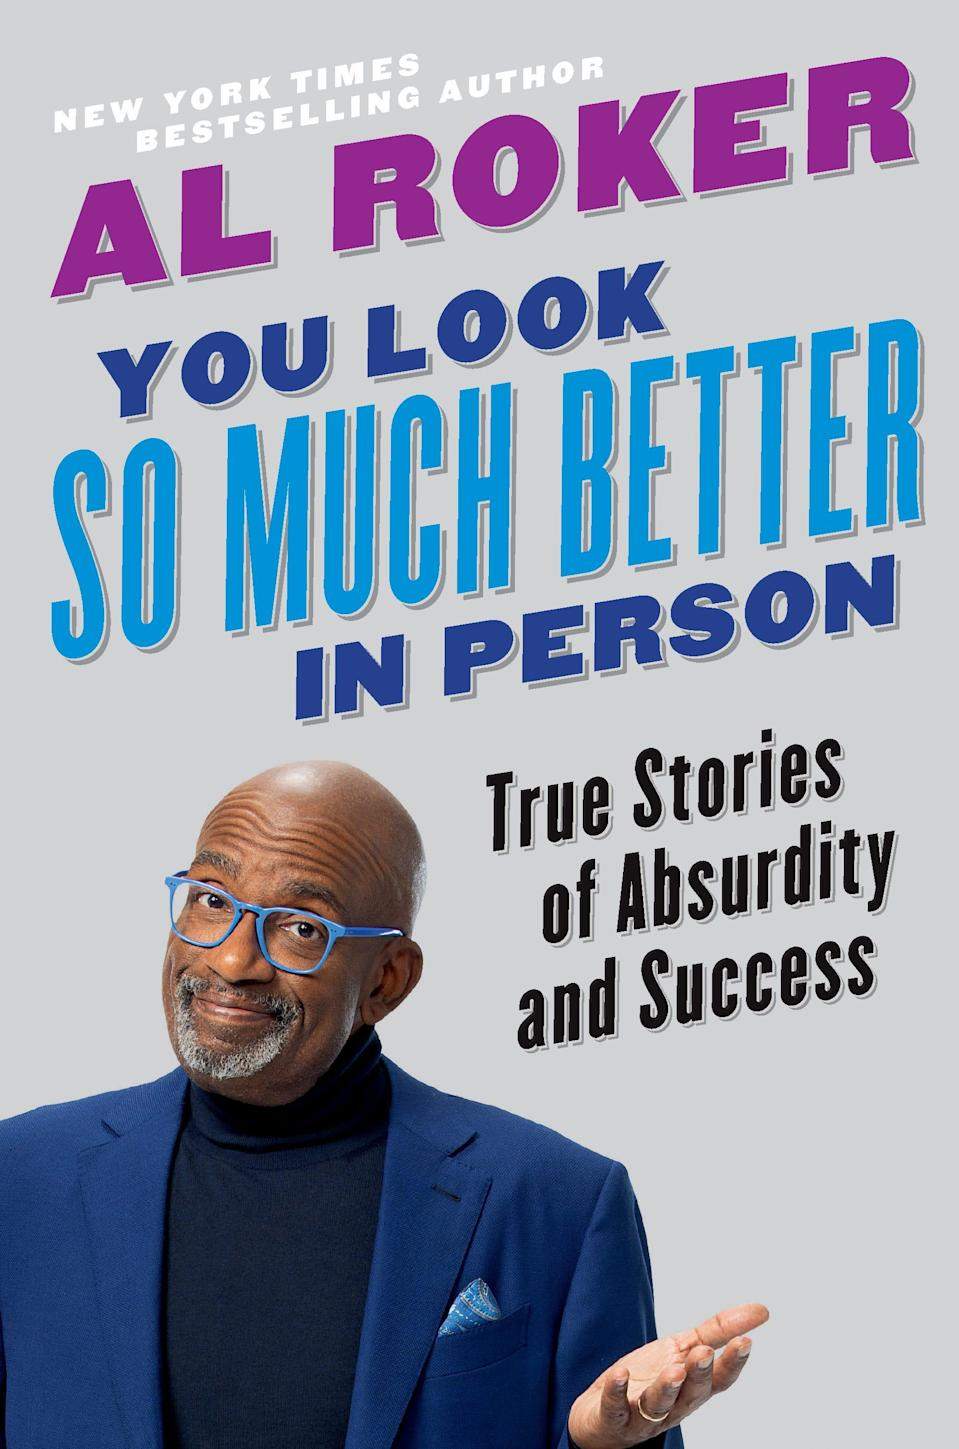 'You Look So Much Better In Person' by Al Roker